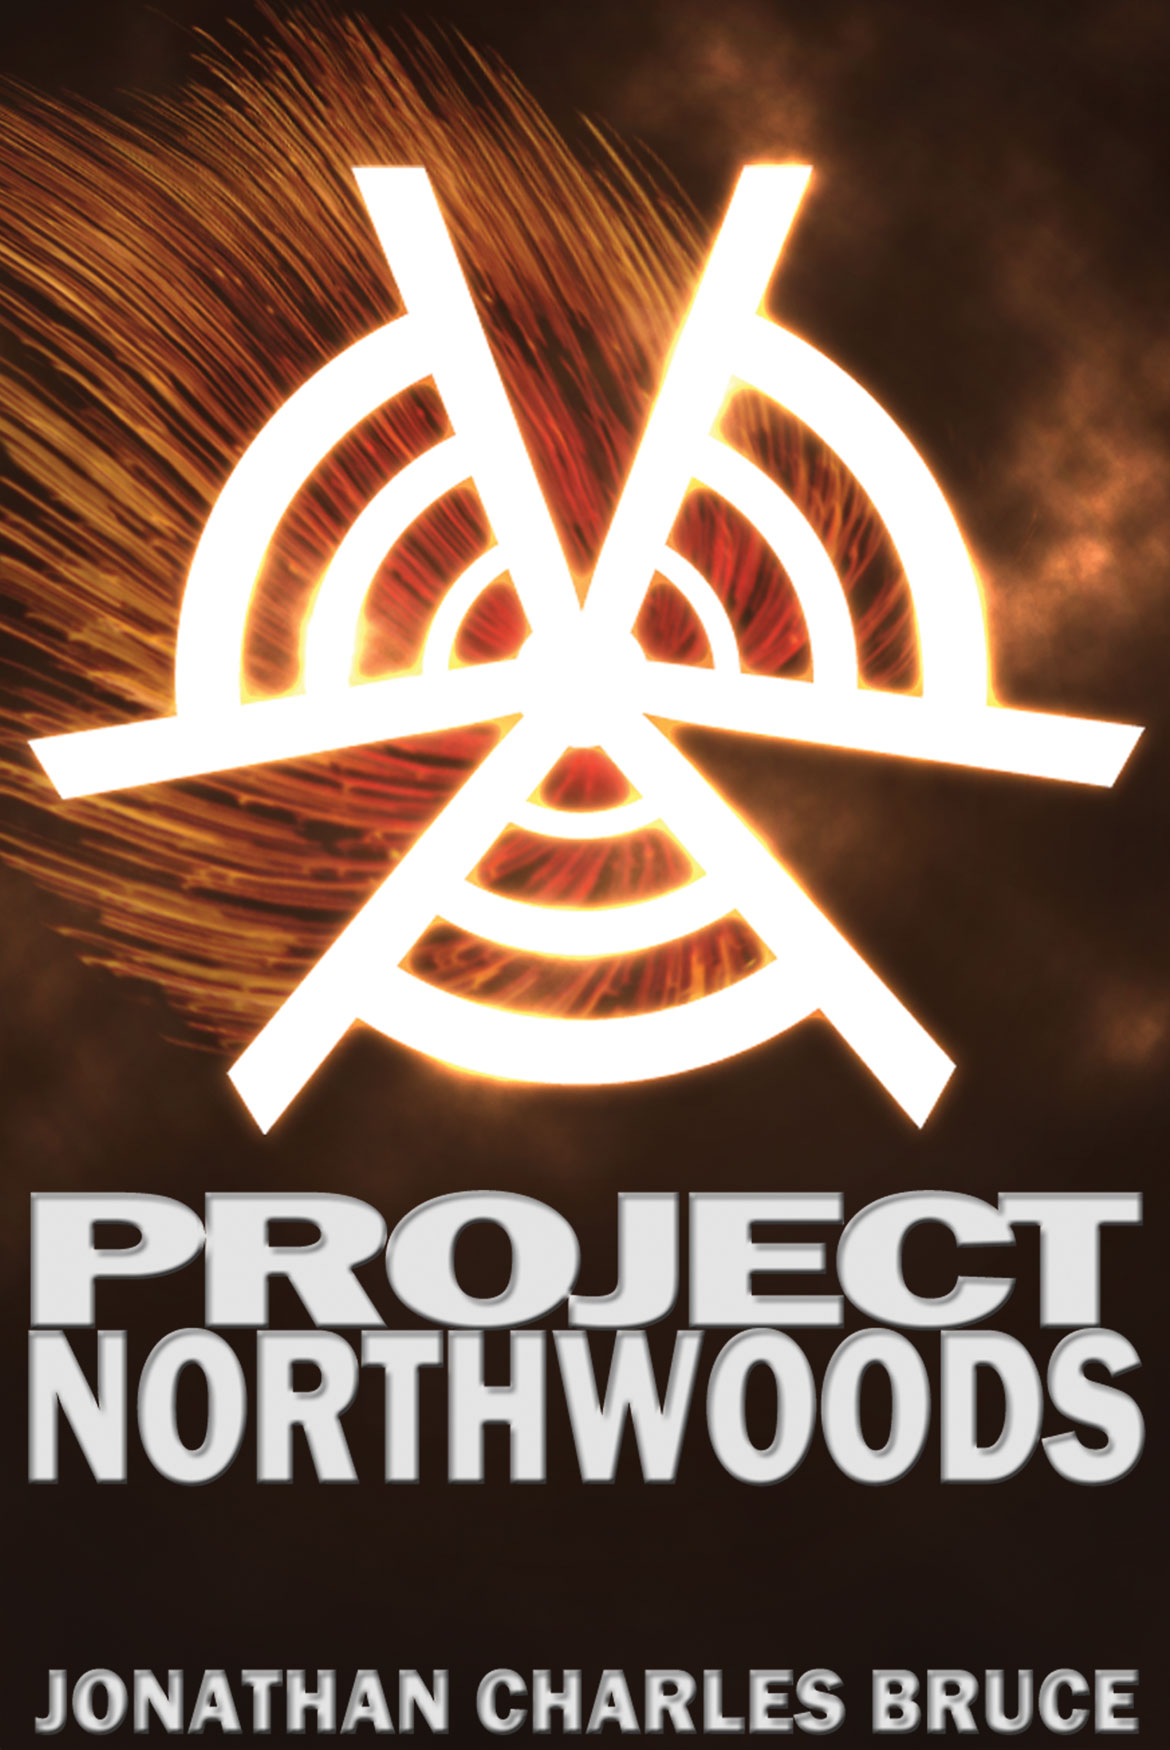 Purchase Project Northwoods at Amazon.com.